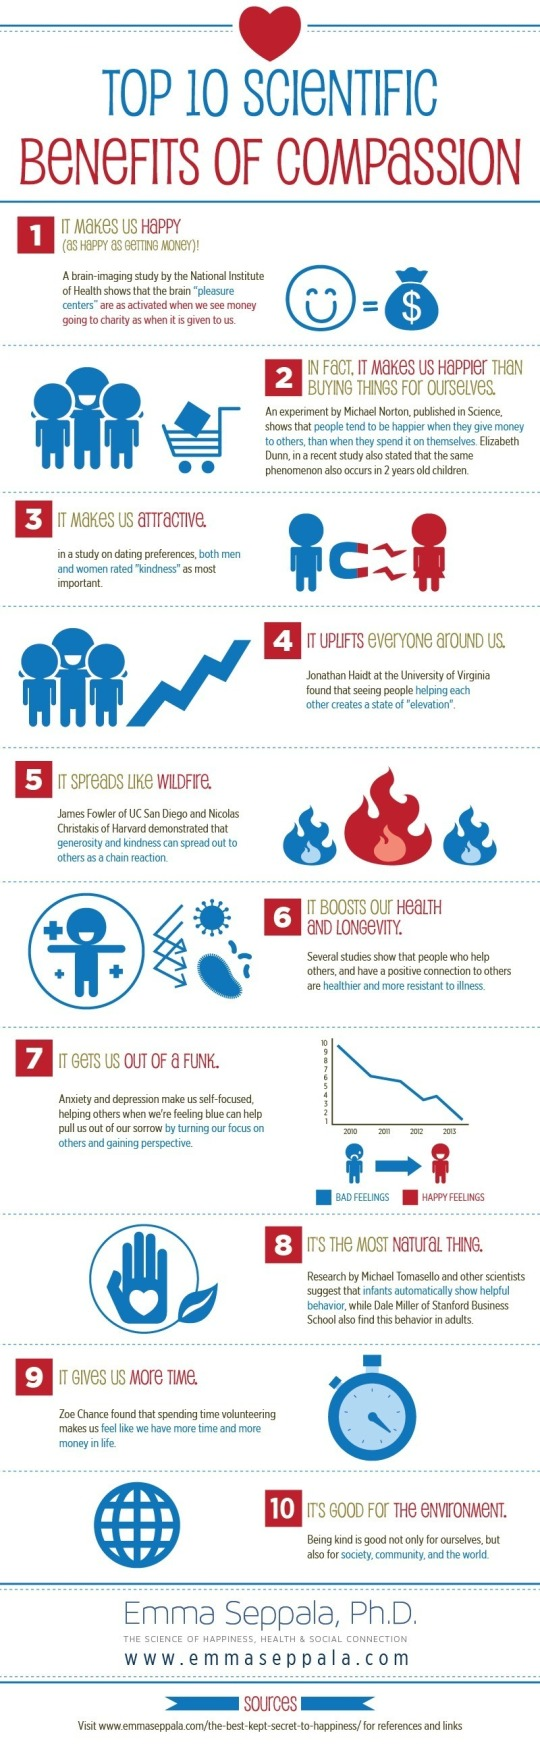 post-34587-infographic-top-10-scientific-lnz3.jpeg (800×2591)